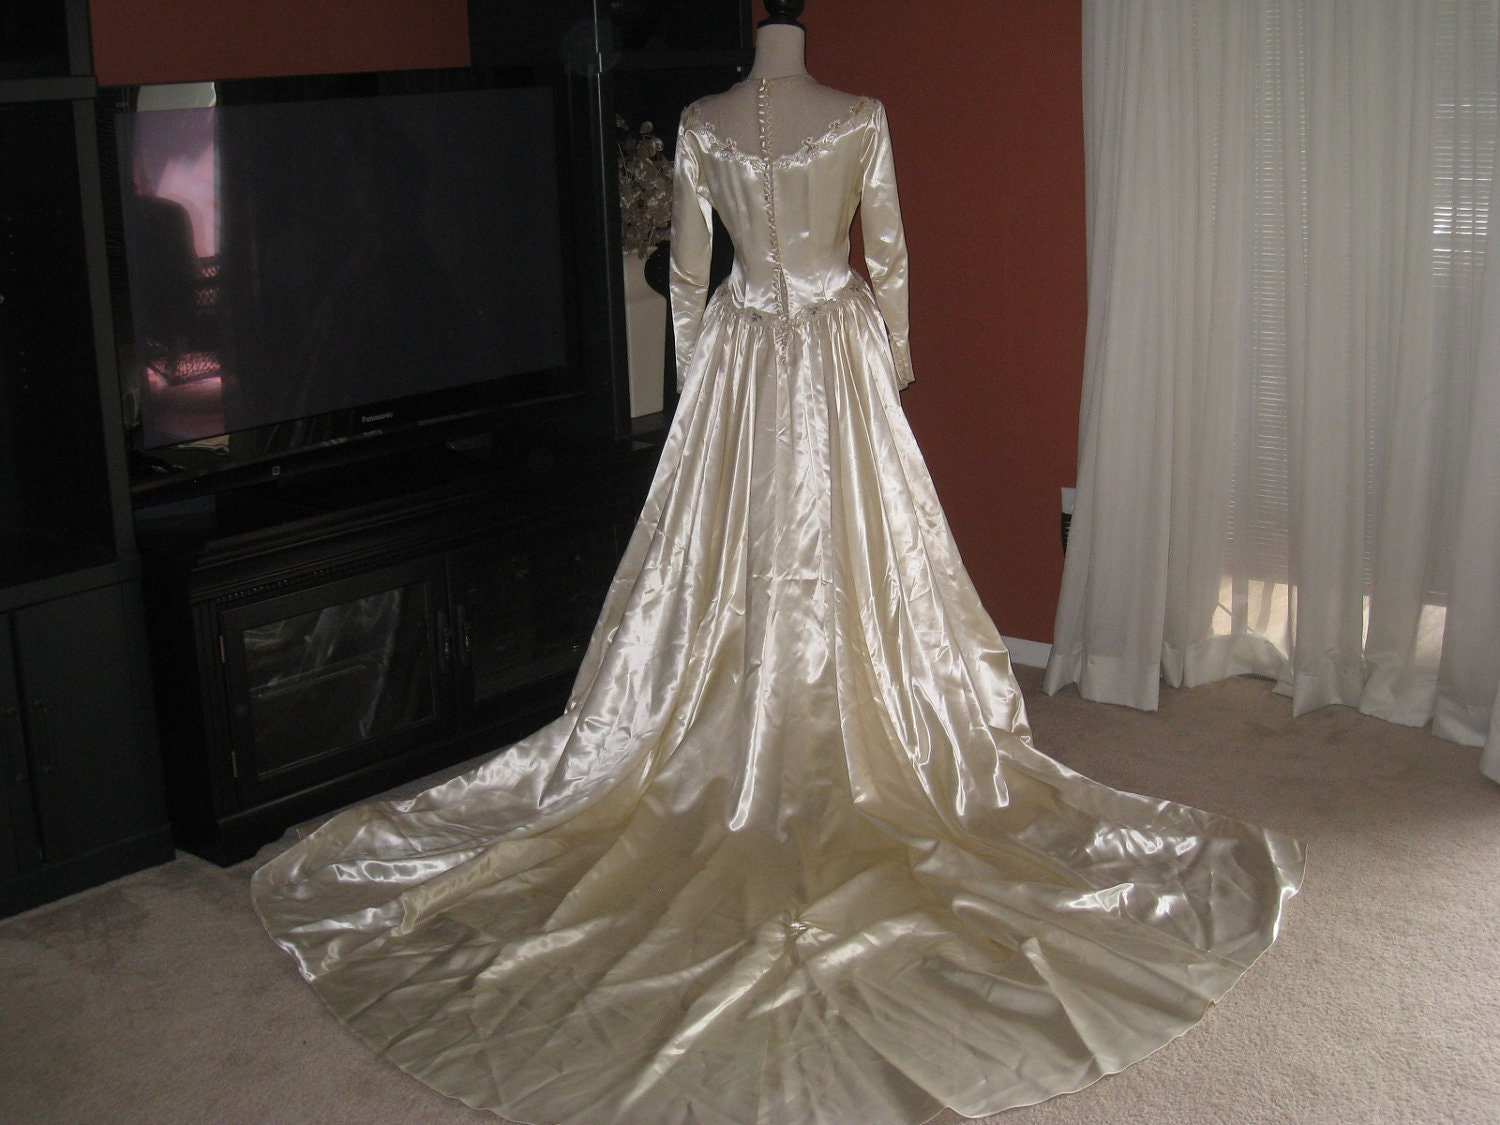 Classic Wedding Dress Satin: RESERVED Vintage Cream Satin Wedding Dress With Ornate By